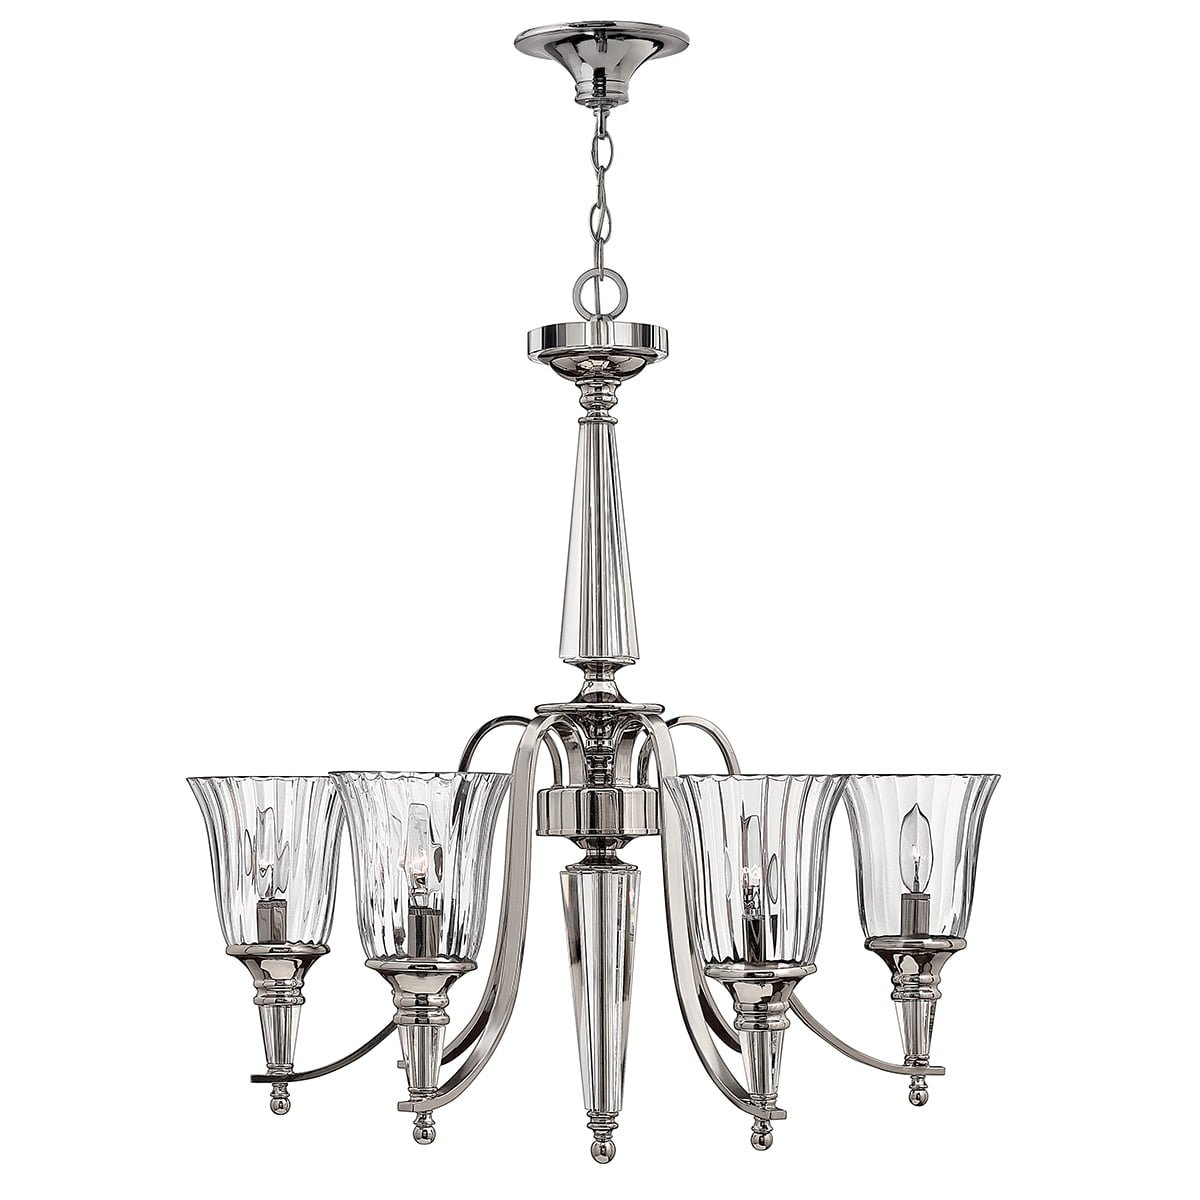 Elstead HK-CHANDON6 Chandon 6 Light Chandelier in Polished Sterling Metal Finish